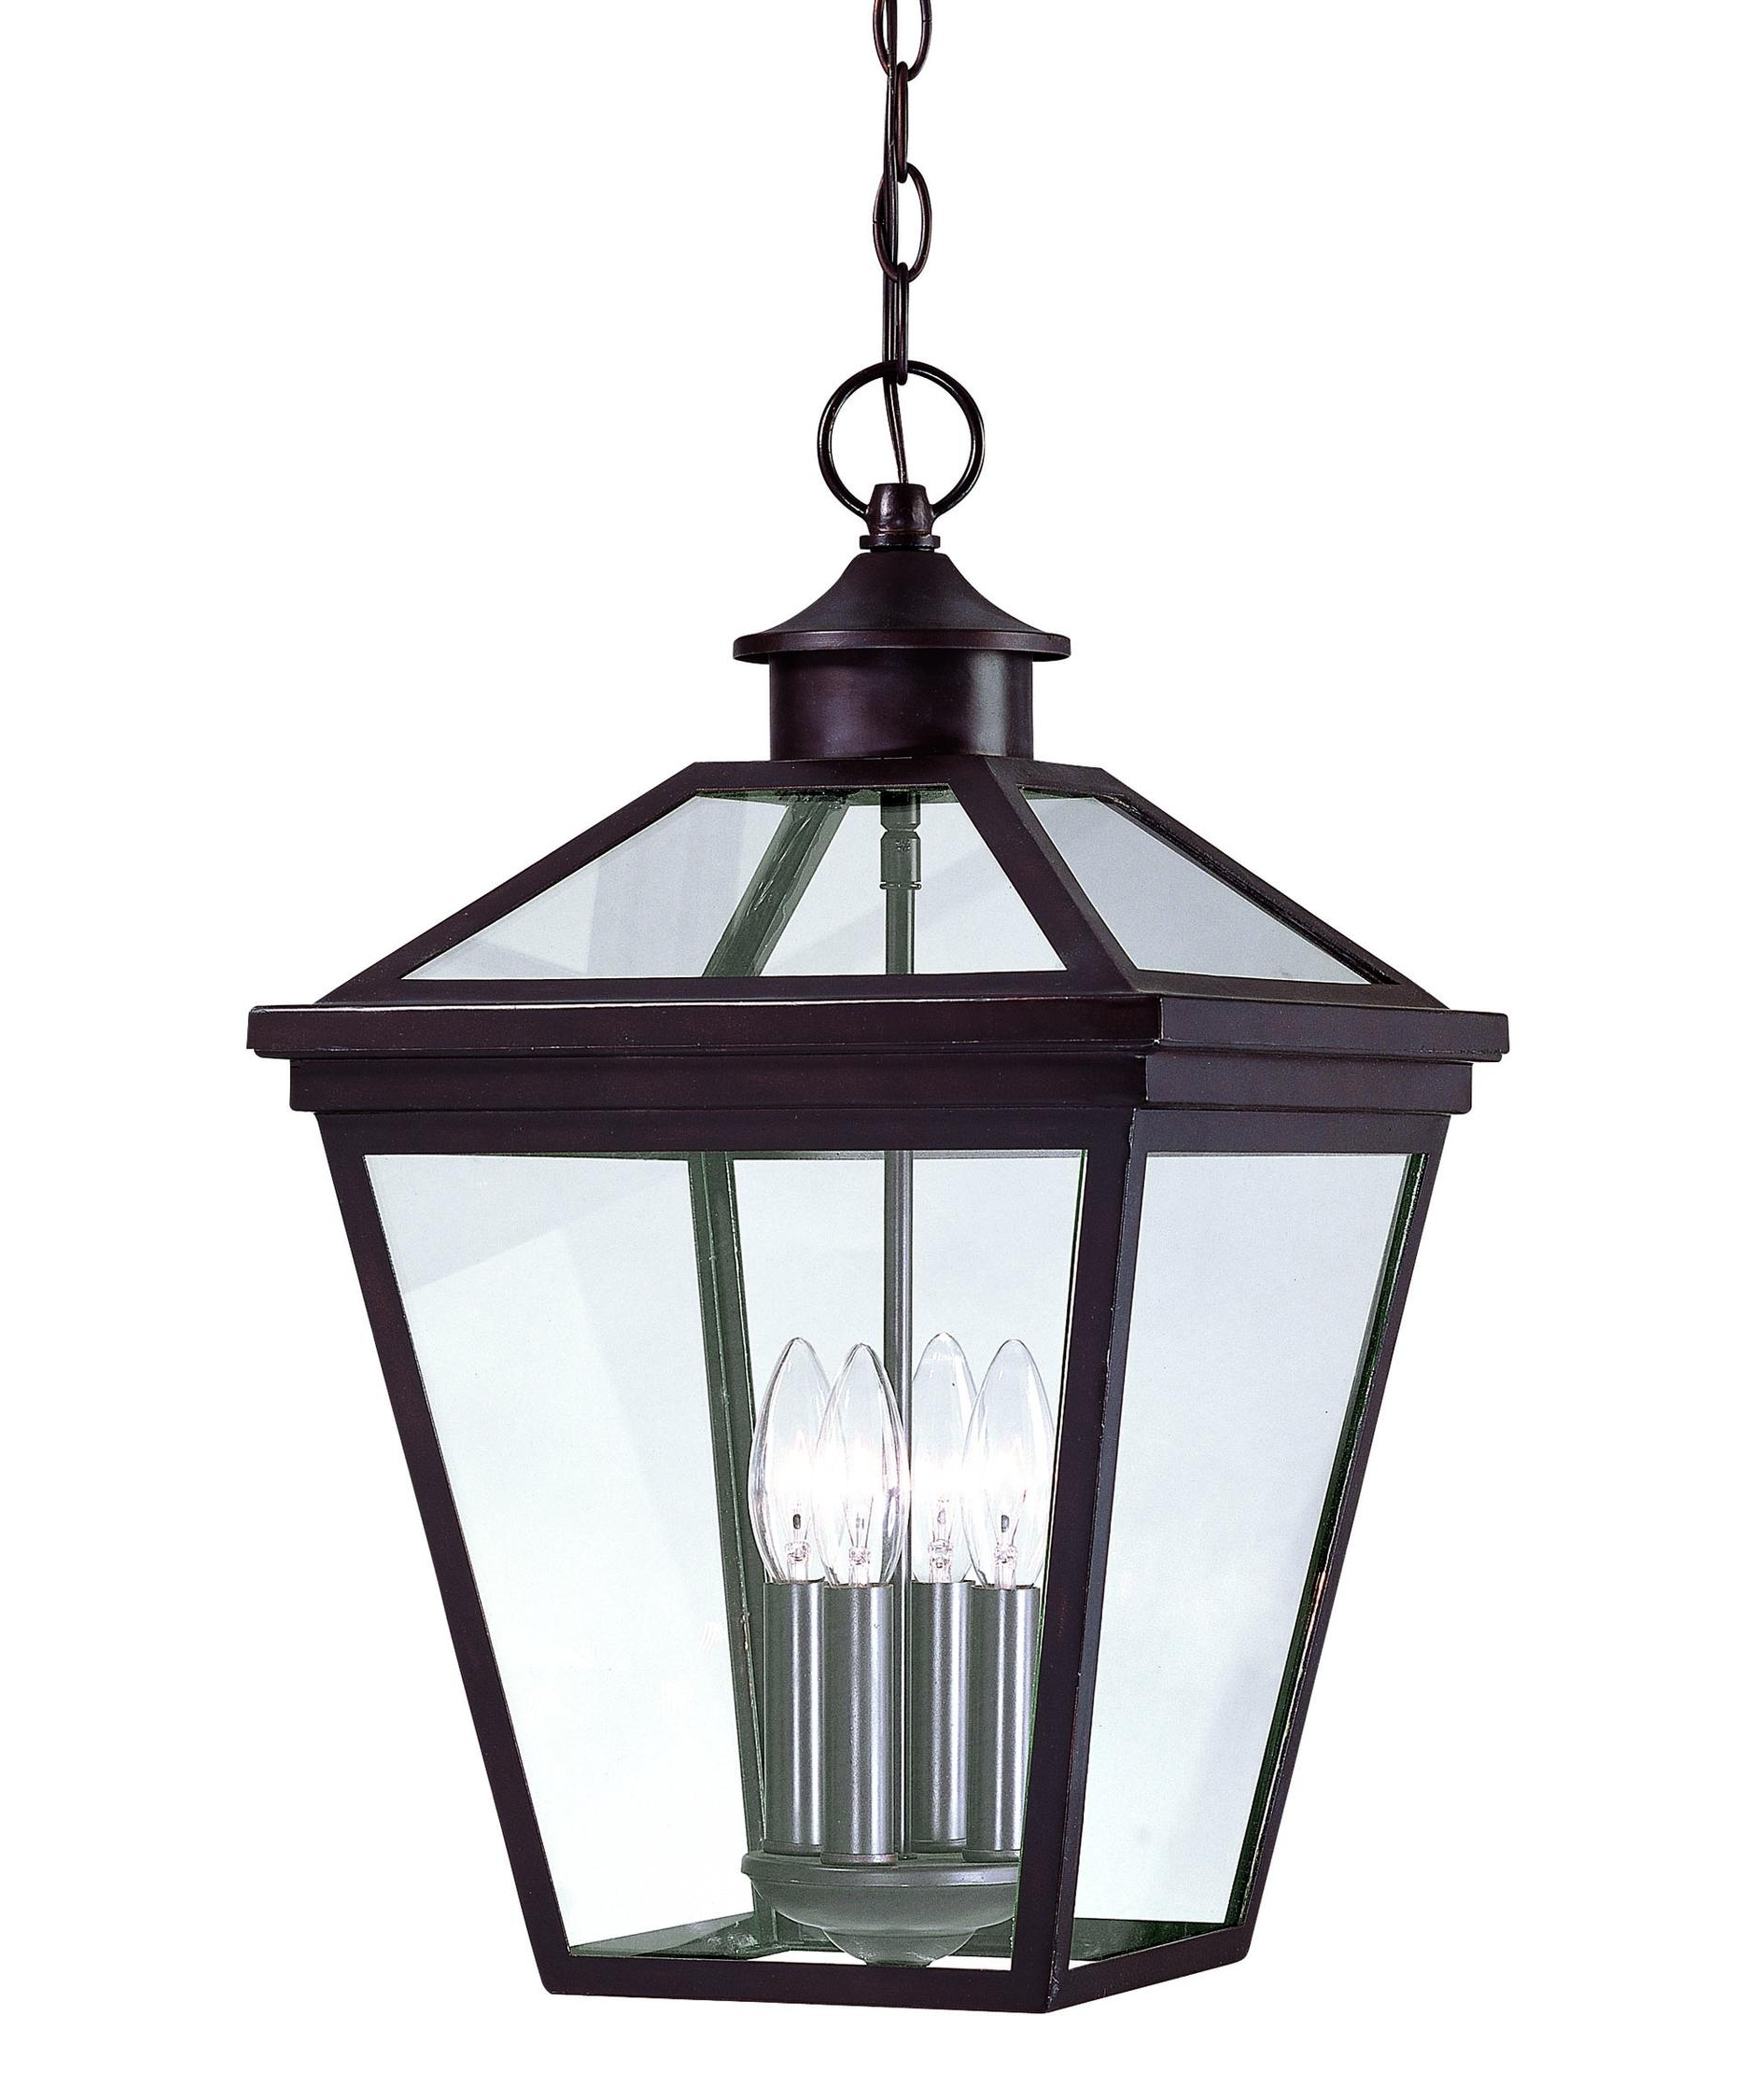 Most Recent Outdoor Hanging Lanterns – Nurani Pertaining To Outdoor Hanging Lamps At Amazon (View 4 of 20)